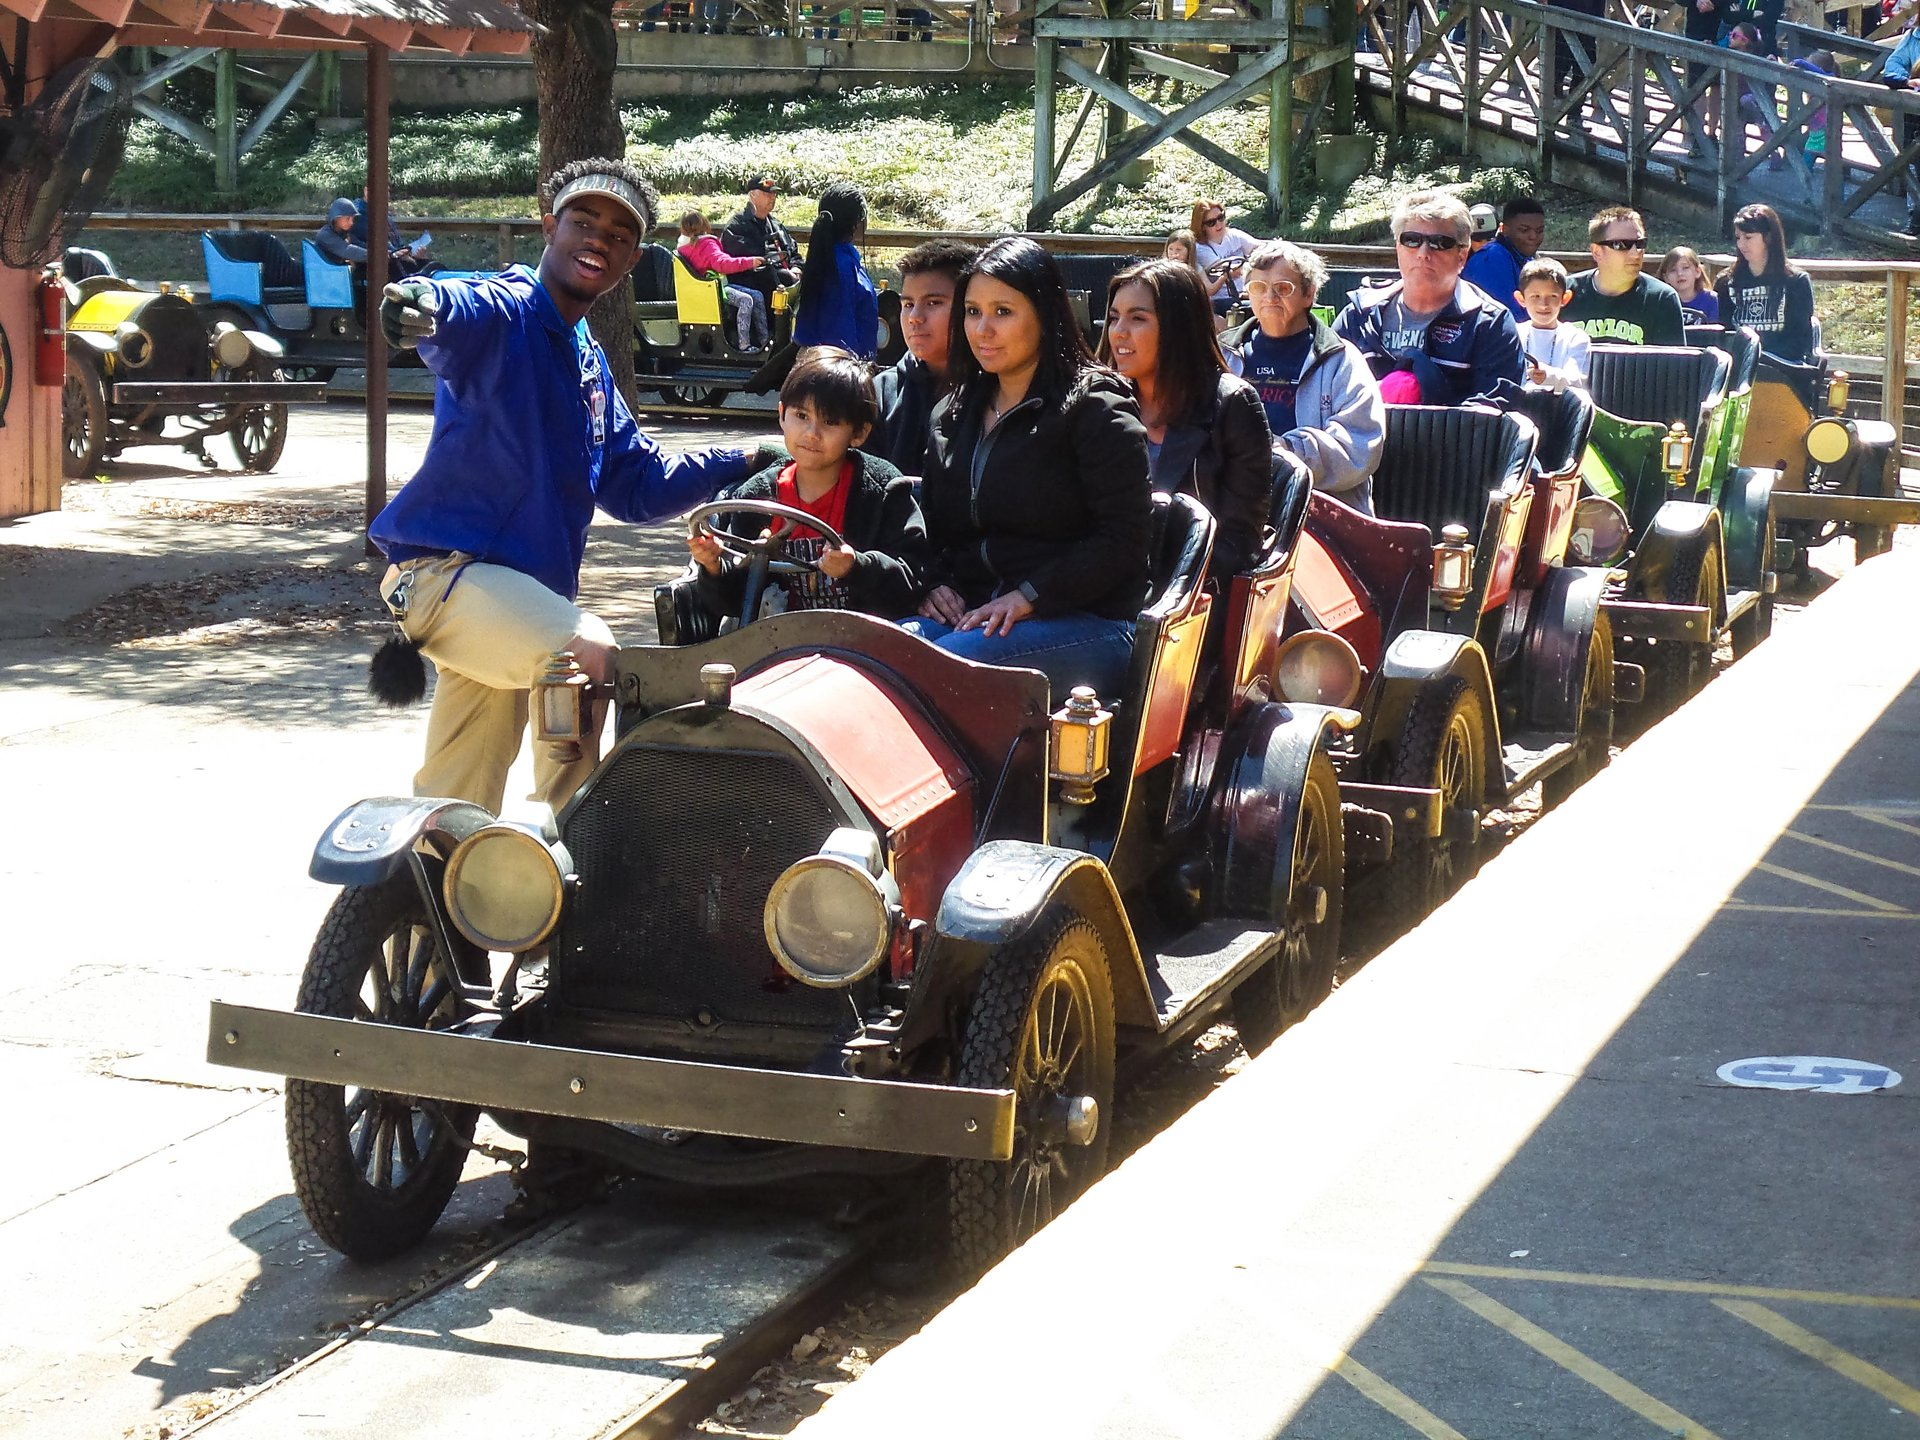 Chaparral Antique Cars | Six Flags Over Texas